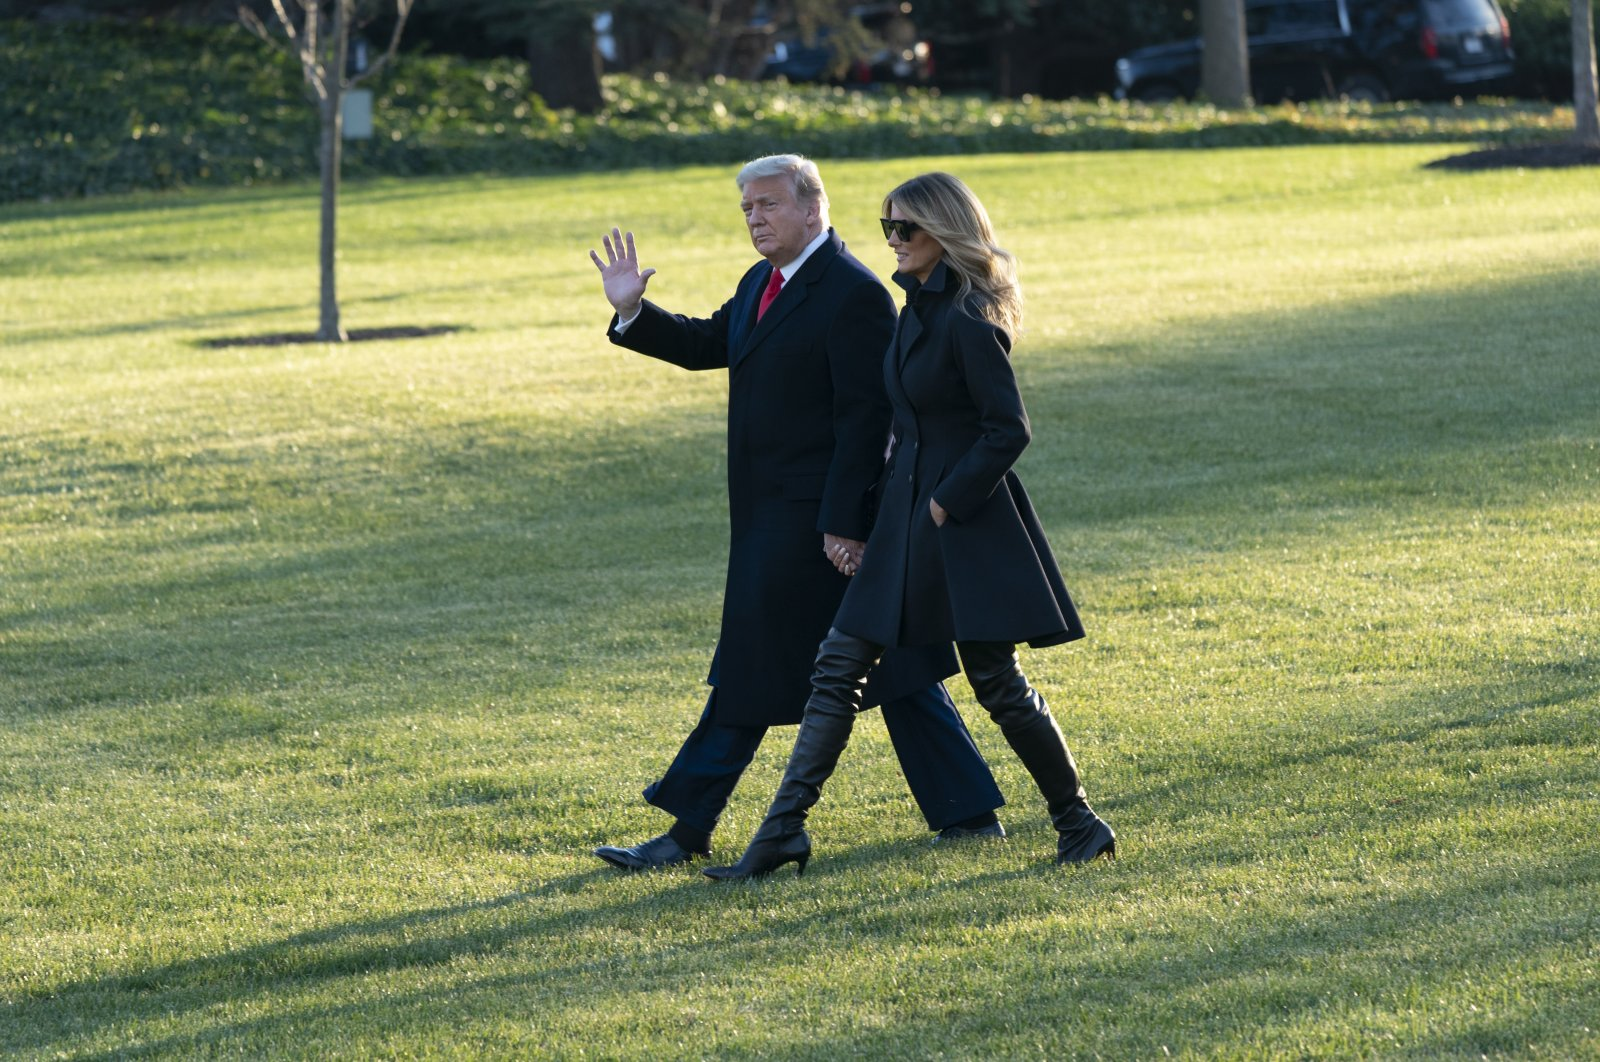 U.S. President Donald J. Trump and First lady Melania Trump (R) depart the White House, in Washington, D.C., USA, Dec. 23, 2020. (EPA Photo)